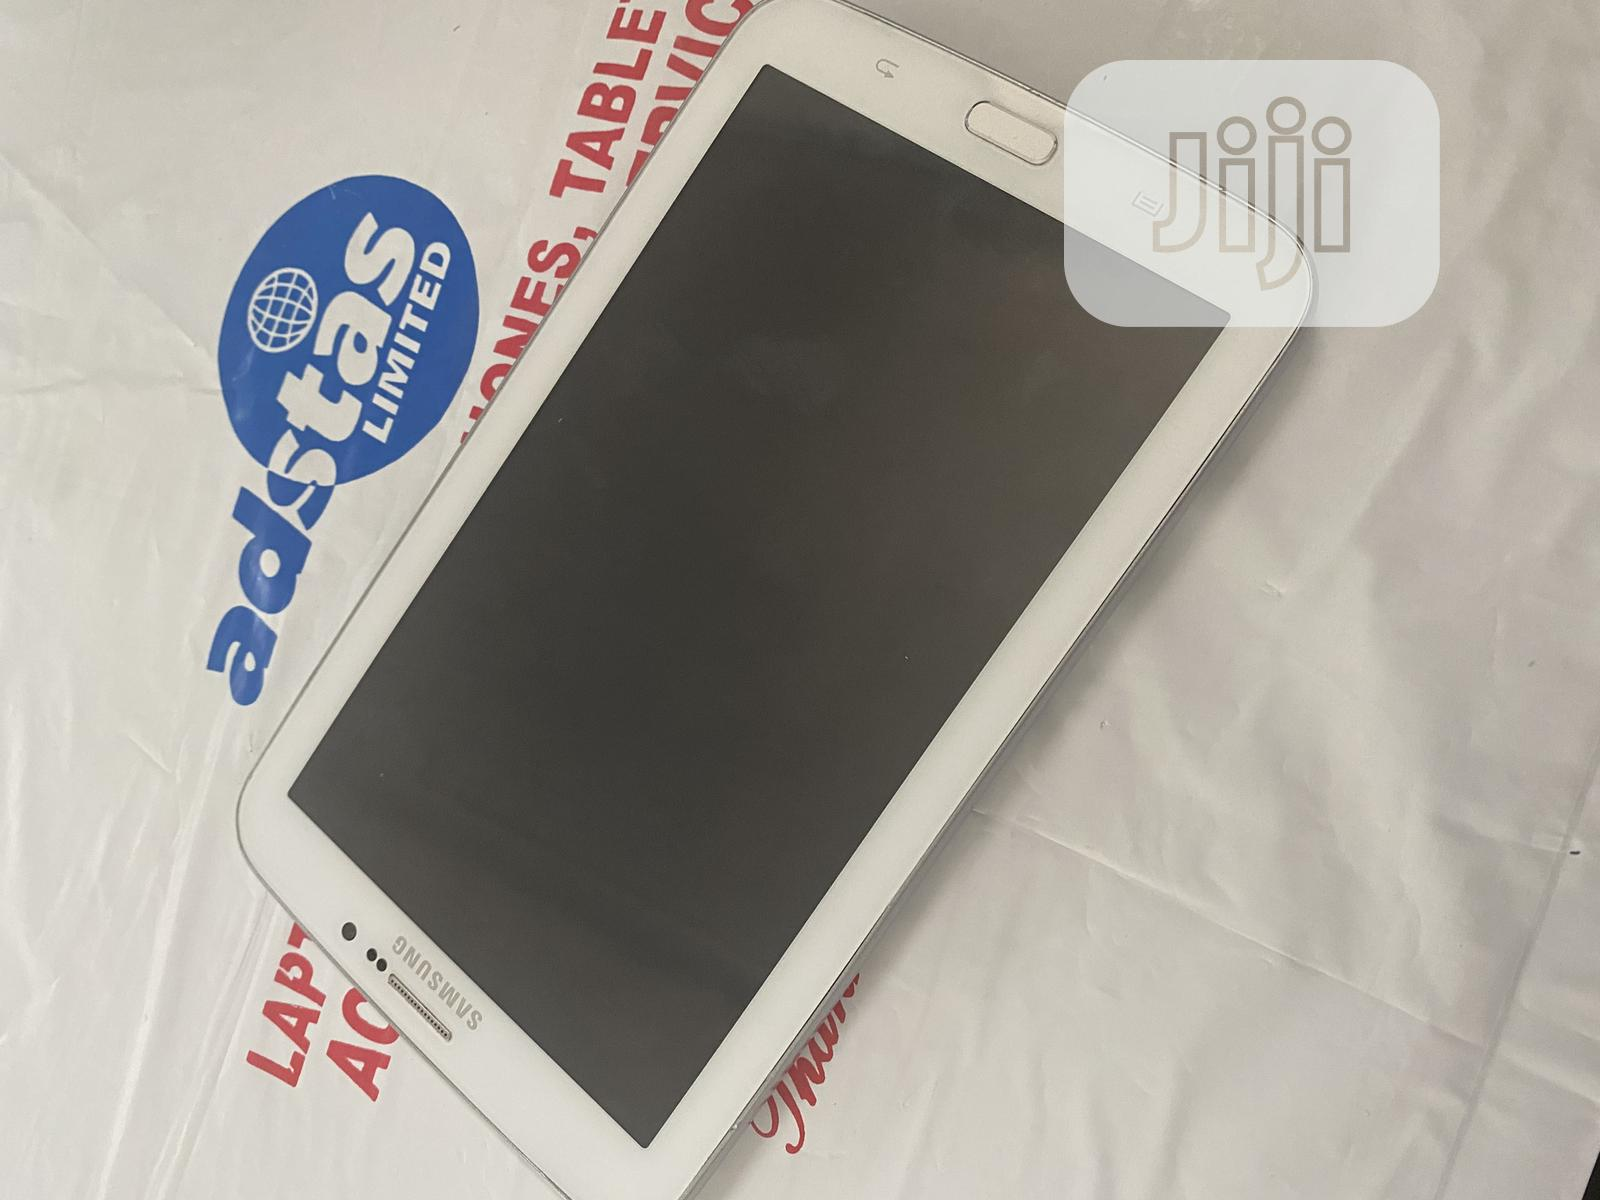 Archive: Samsung Galaxy Tab 3 7.0 WiFi 8 GB White